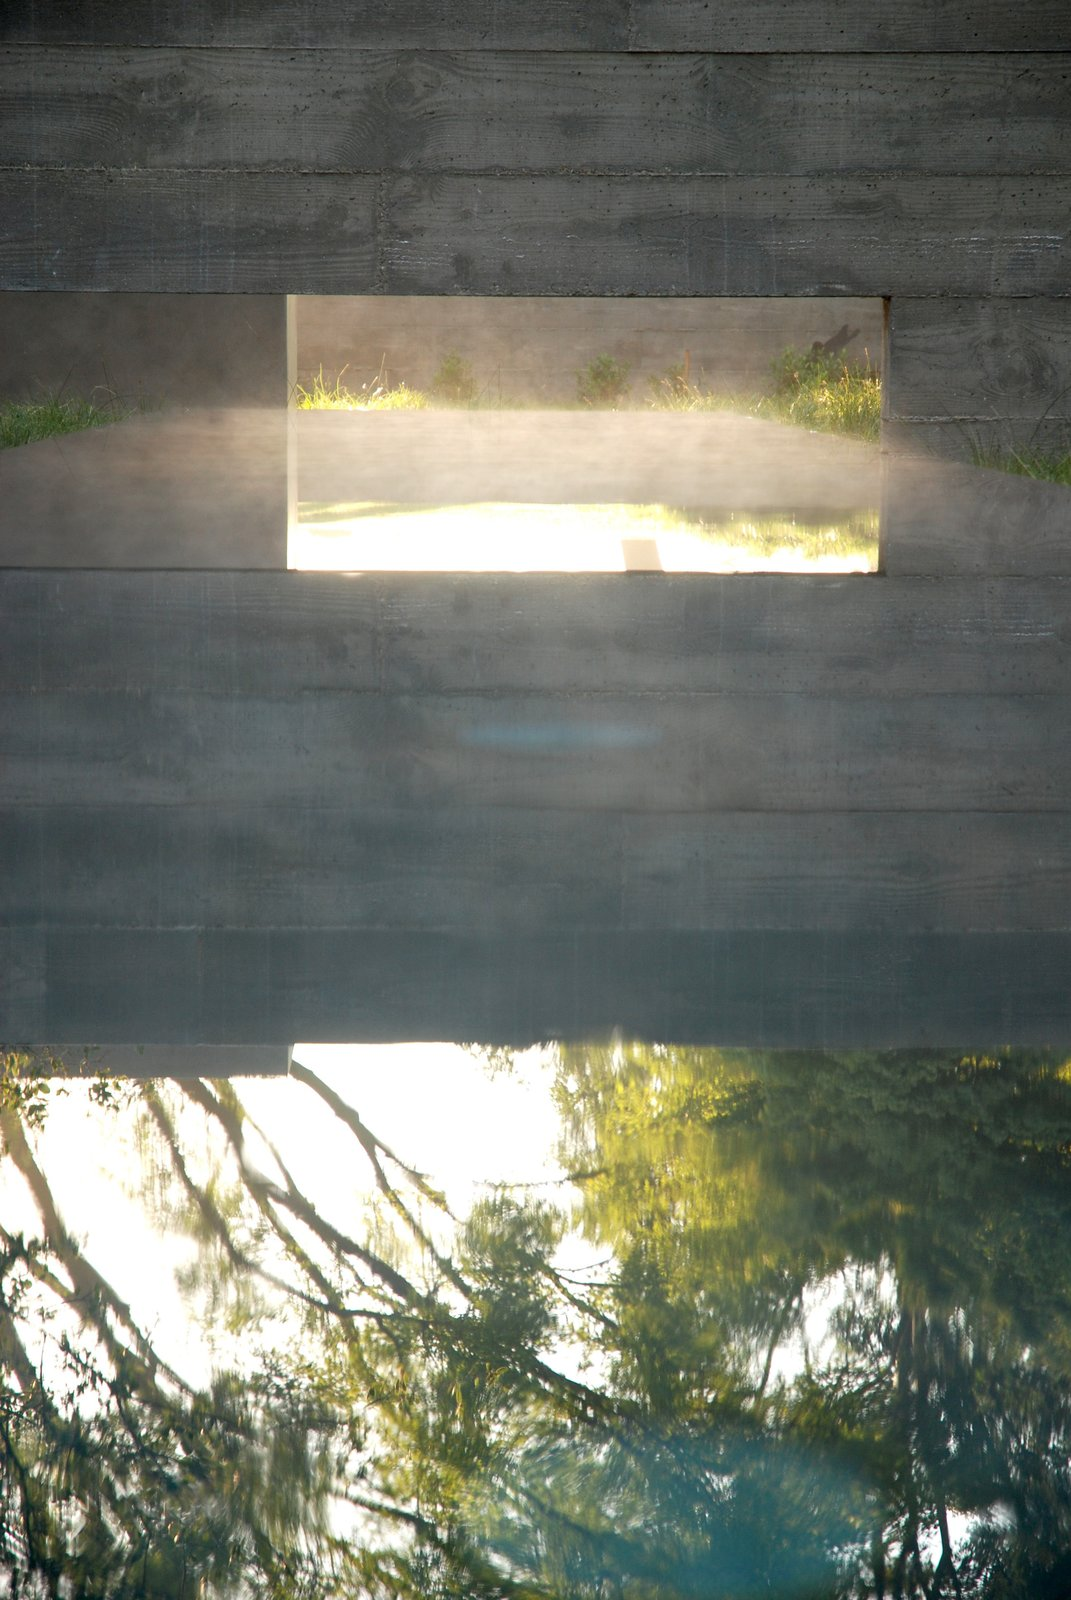 """A reflecting pool for a residence that Aidlin Darling designed in San Joaquin Valley, California. """"This rural residential project incorporates the agricultural vernacular language of California's Central Valley, including irrigation aqueducts and vastness of scale,"""" David Darling says. """"Landscape, materiality, and the cooling effect of water elements were paramount."""" Photo courtesy of the Sonoma Valley Museum of Art.  Photo 2 of 6 in Aidlin Darling Design Takes Over the Sonoma Valley Museum of Art"""